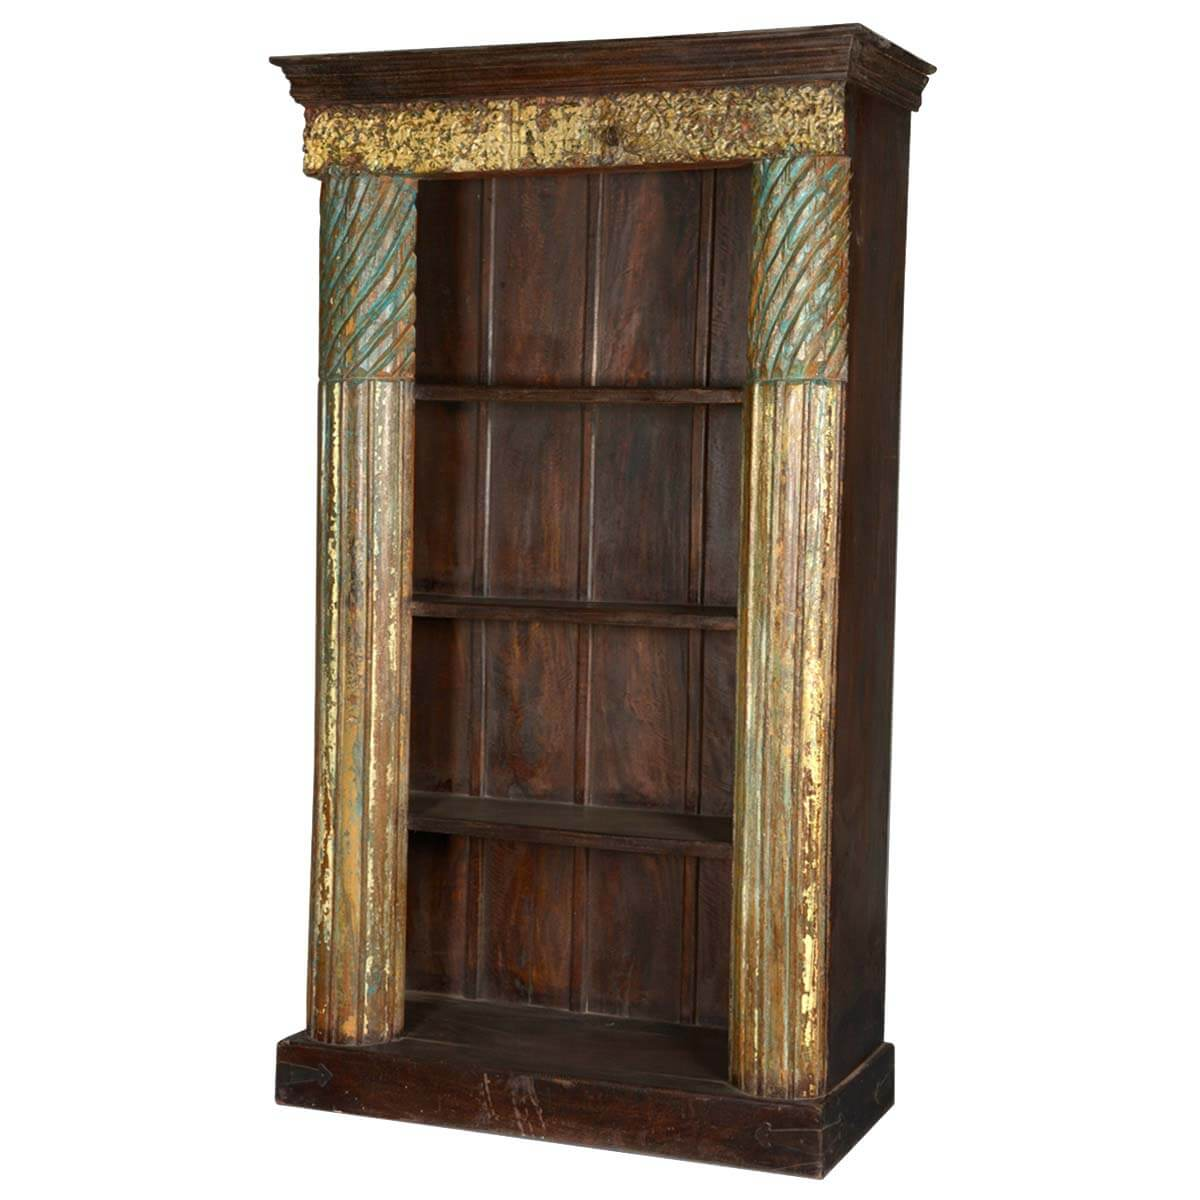 Reclaimed Wood Bookcase ~ Golden column reclaimed wood shelf open display bookcase